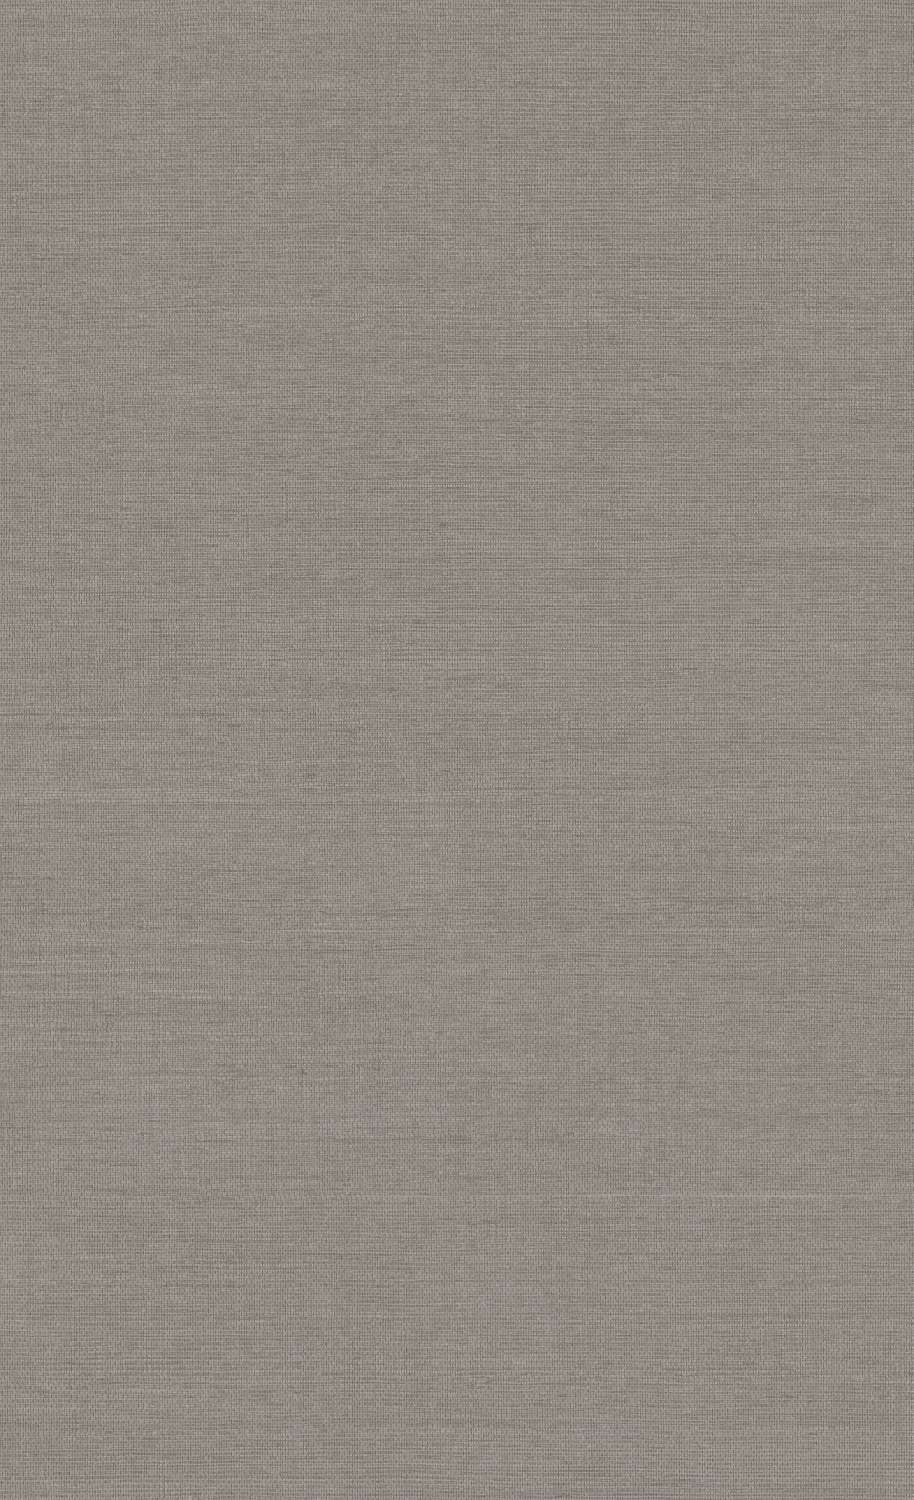 Grayish Brown Minimalist Weave C7256. Commercial wallpaper. Textured wallpaper. Hospitality wallpaper. Corporate wallpaper. Health care wallpaper.